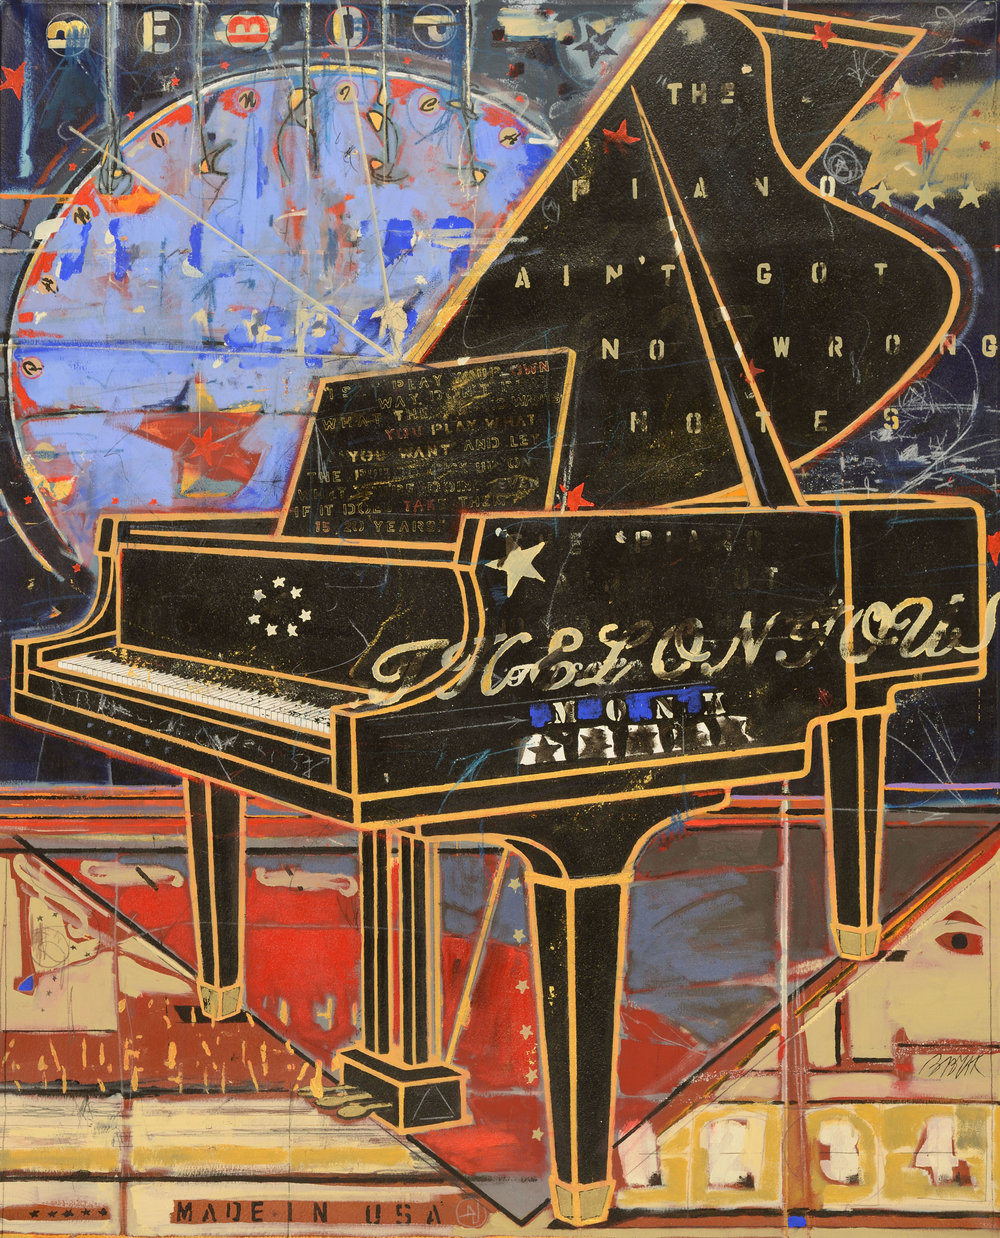 Piano • 62 X 50 • Acrylic, graphite, glitter, 24K gold leaf on canvas